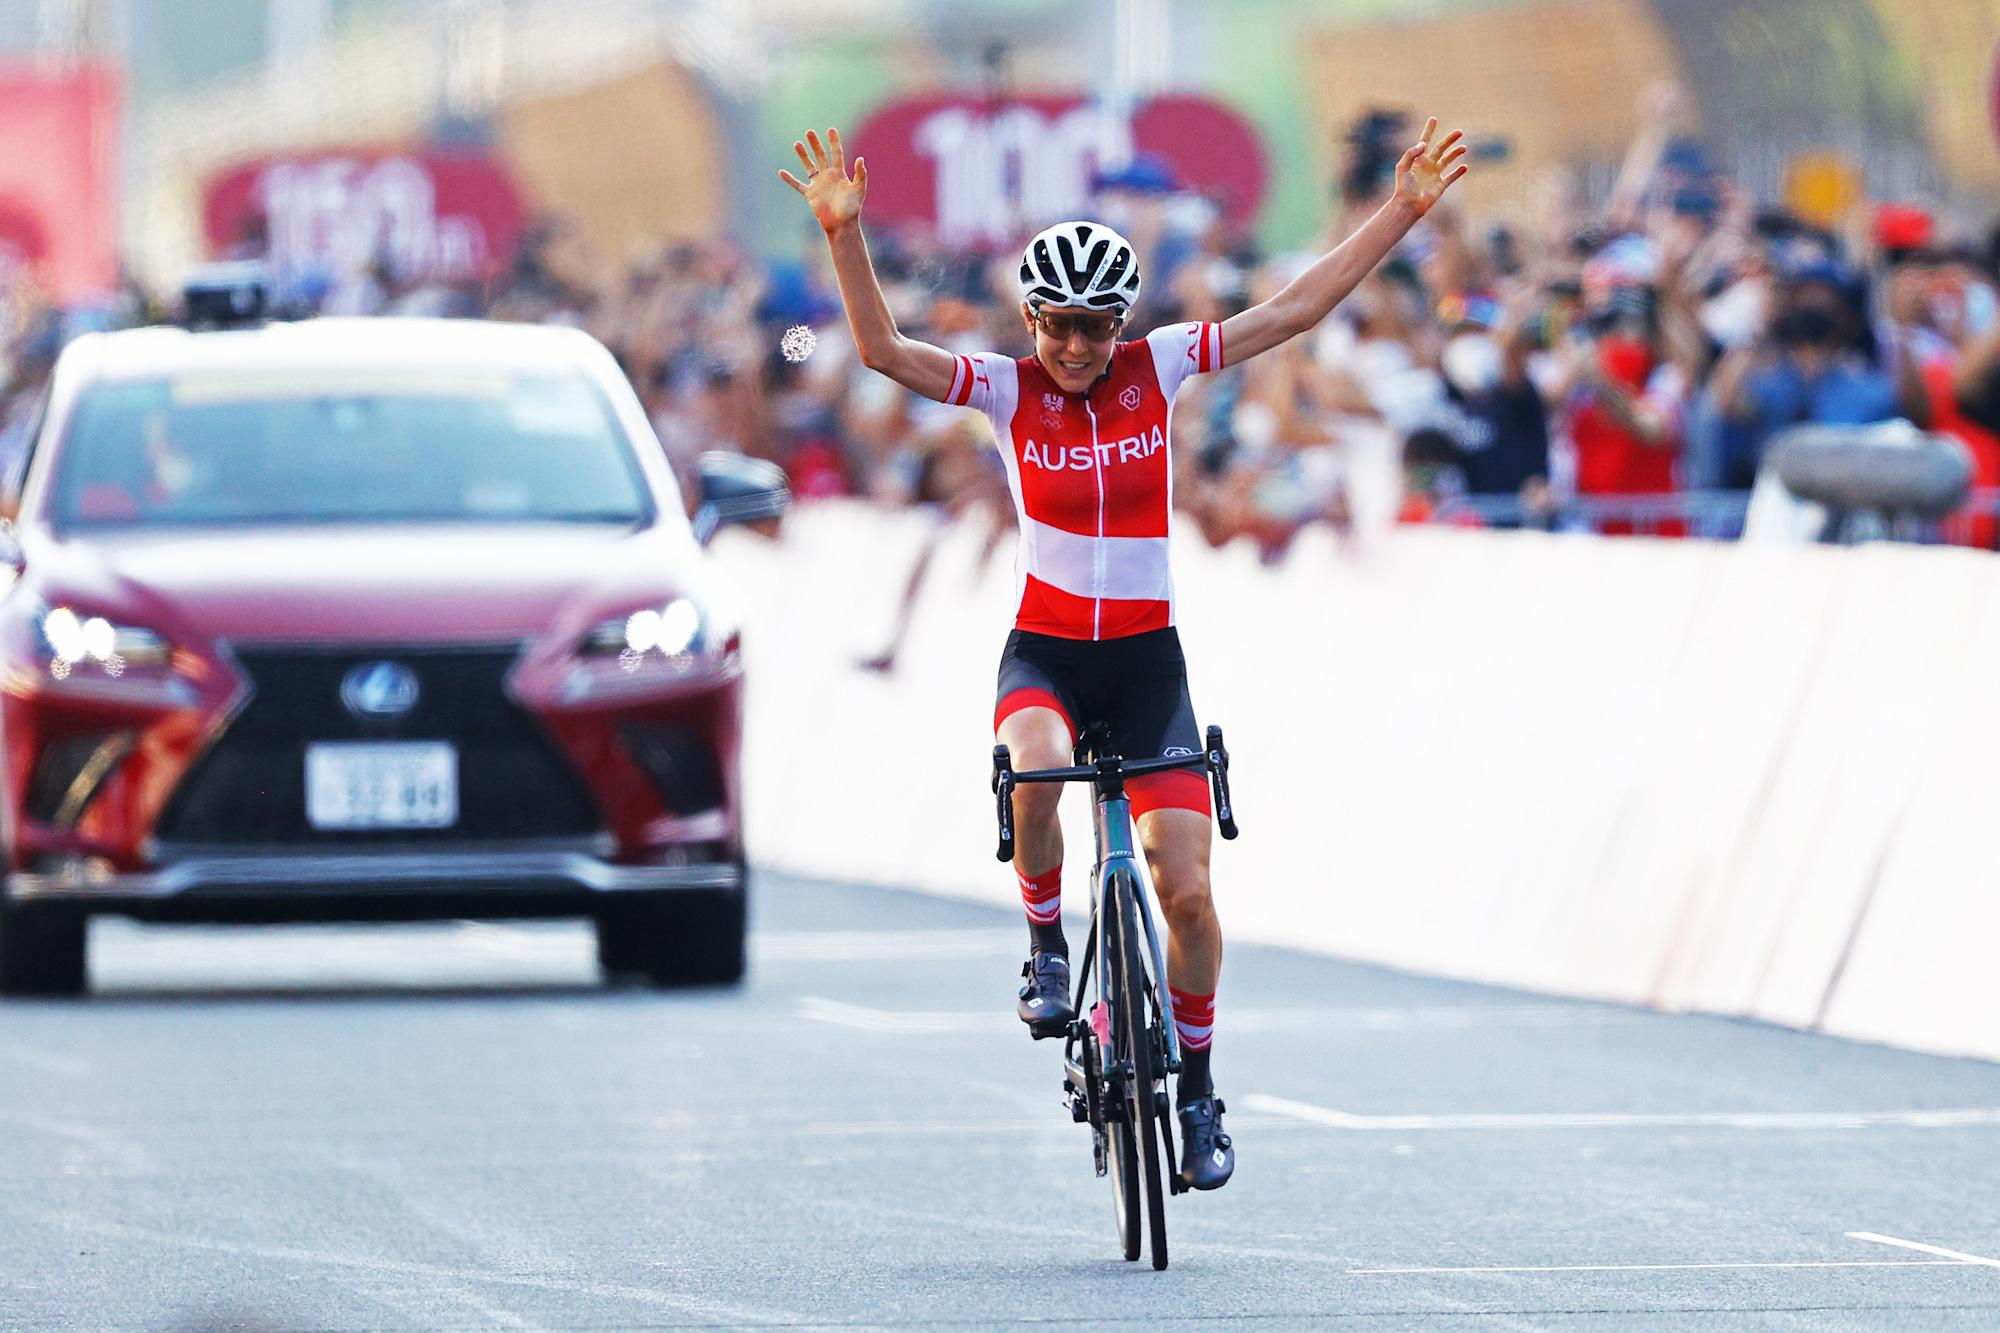 An underdog road cyclist won so big that her opponents forgot she existed